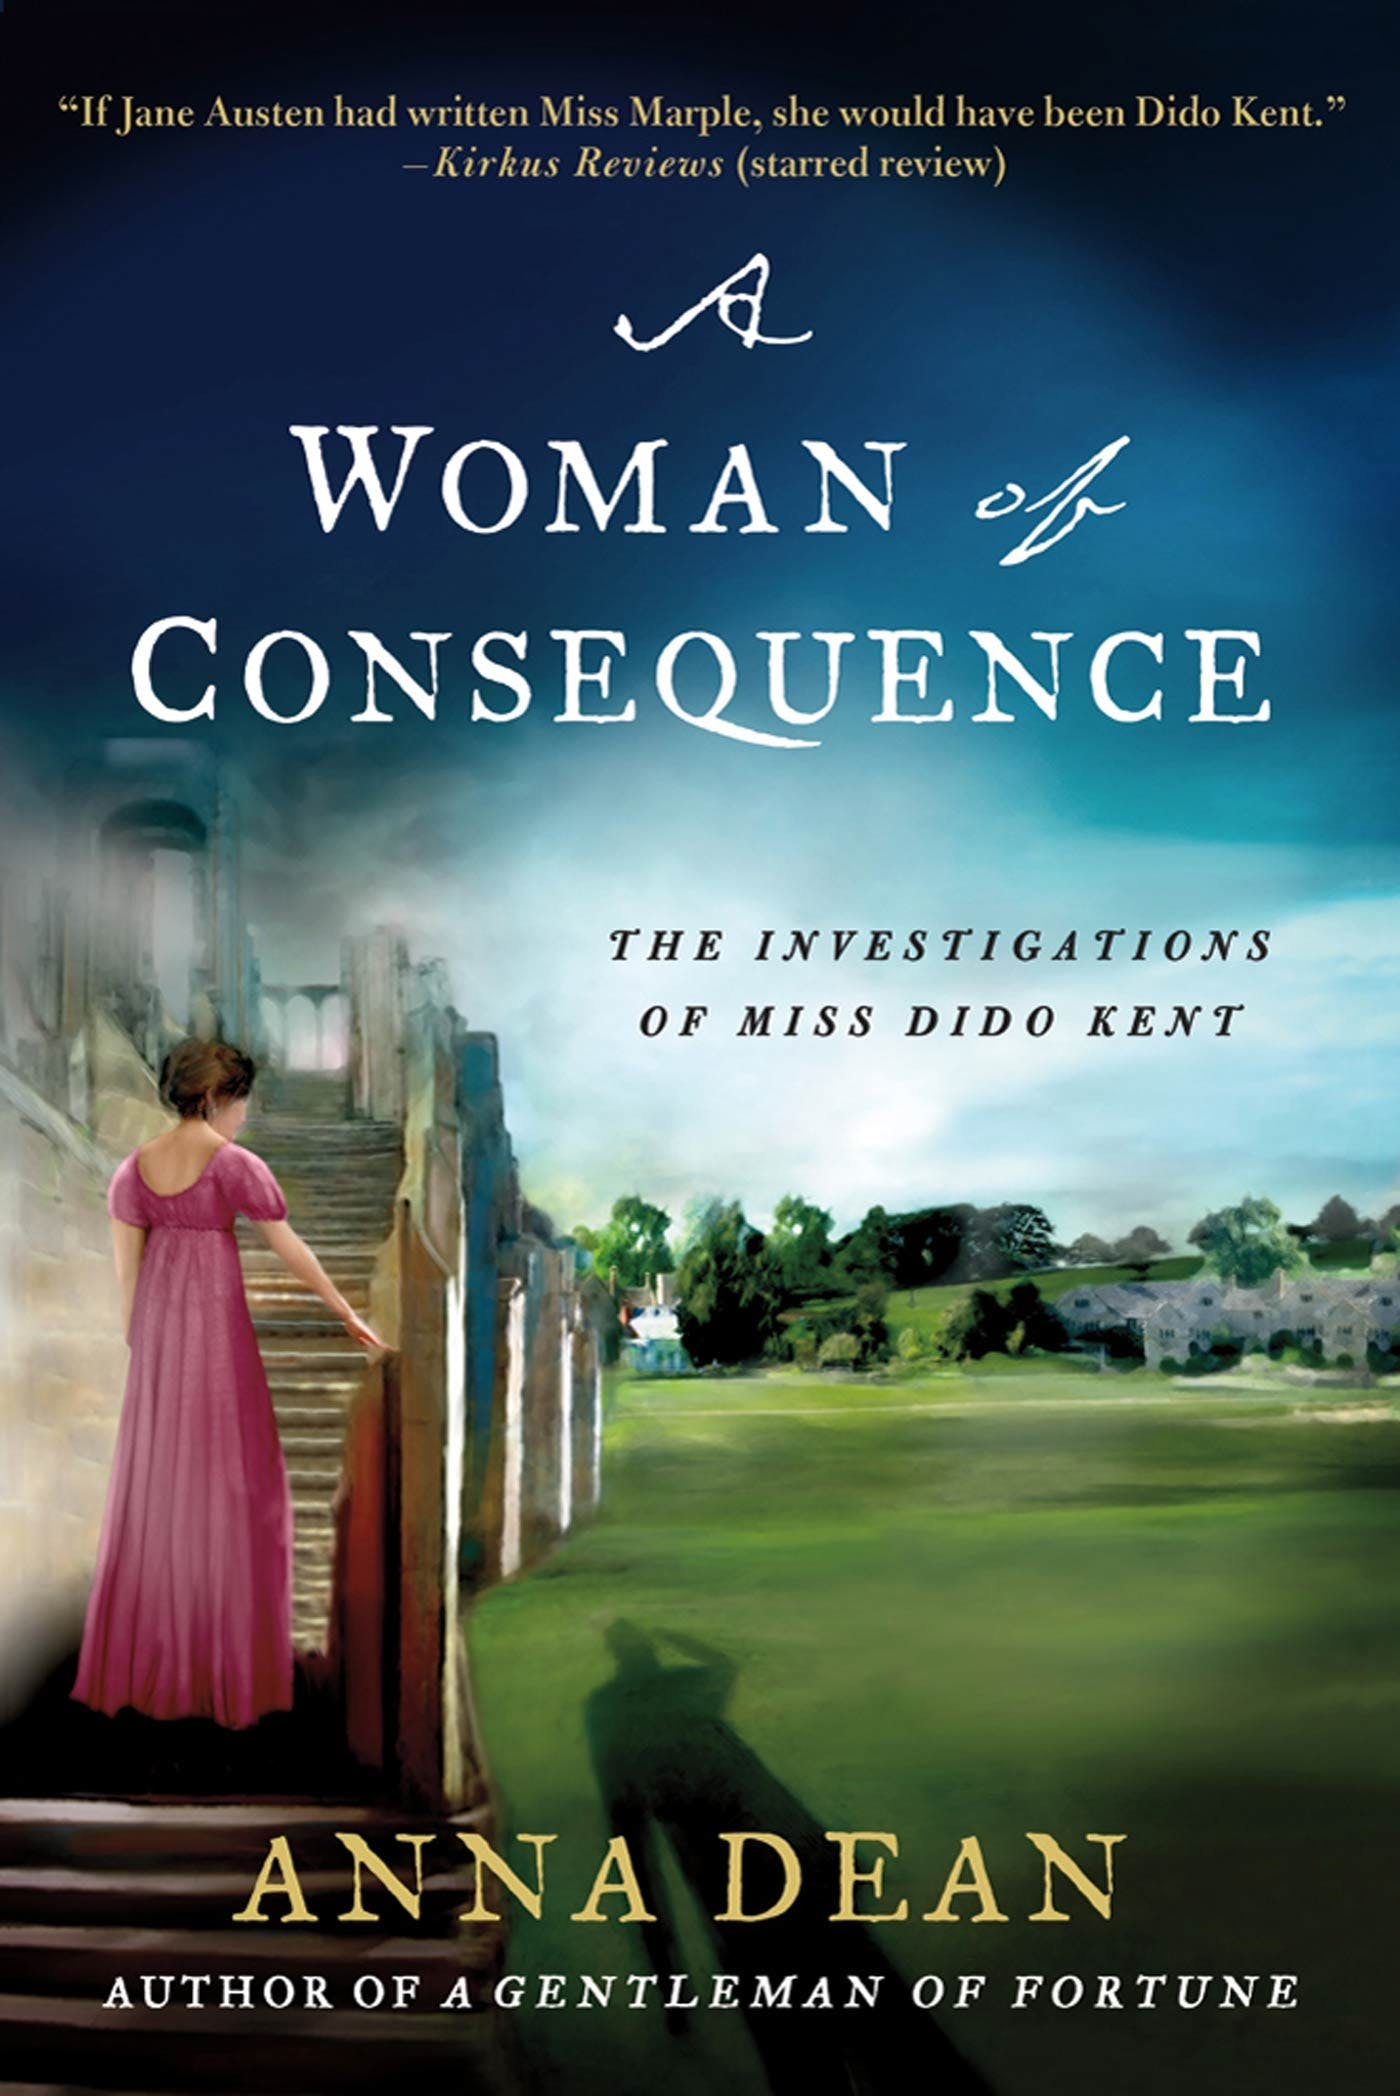 Image of A Woman of Consequence